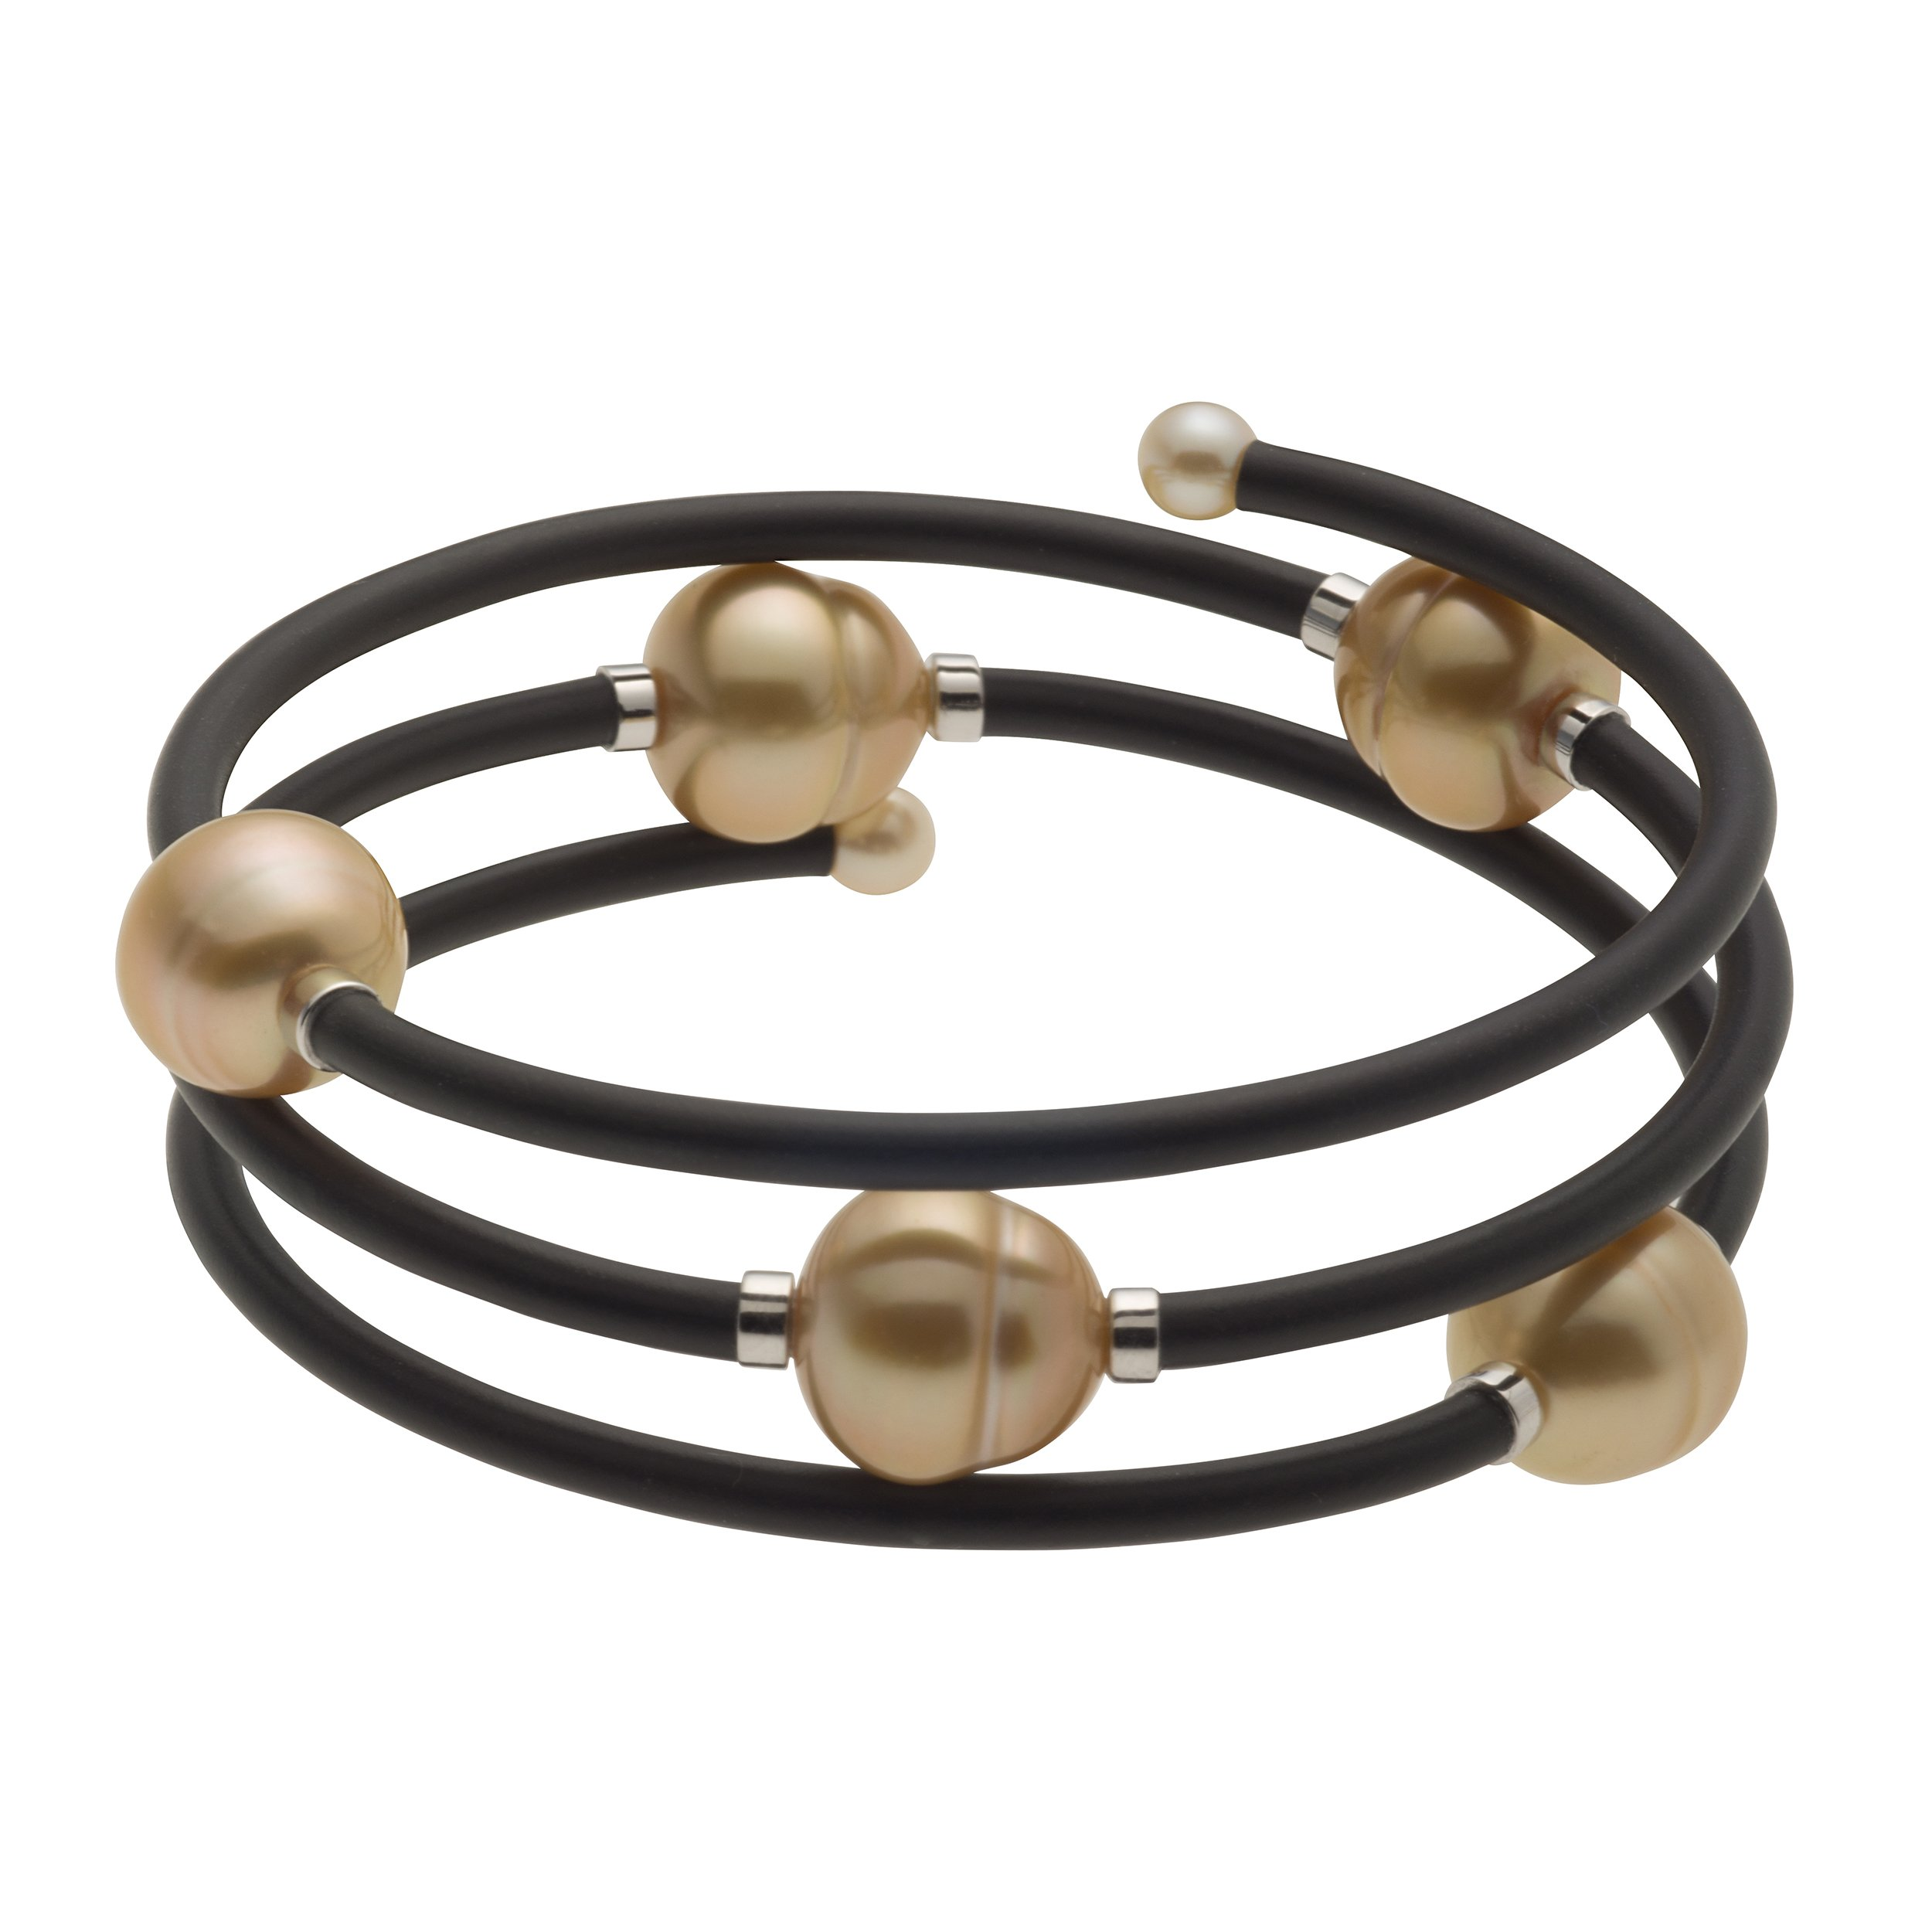 UNIQUE UNISEX GOLDEN SOUTH SEA AND AKOYA CULTURED PEARL WRAP-AROUND BANGLE BRACELET